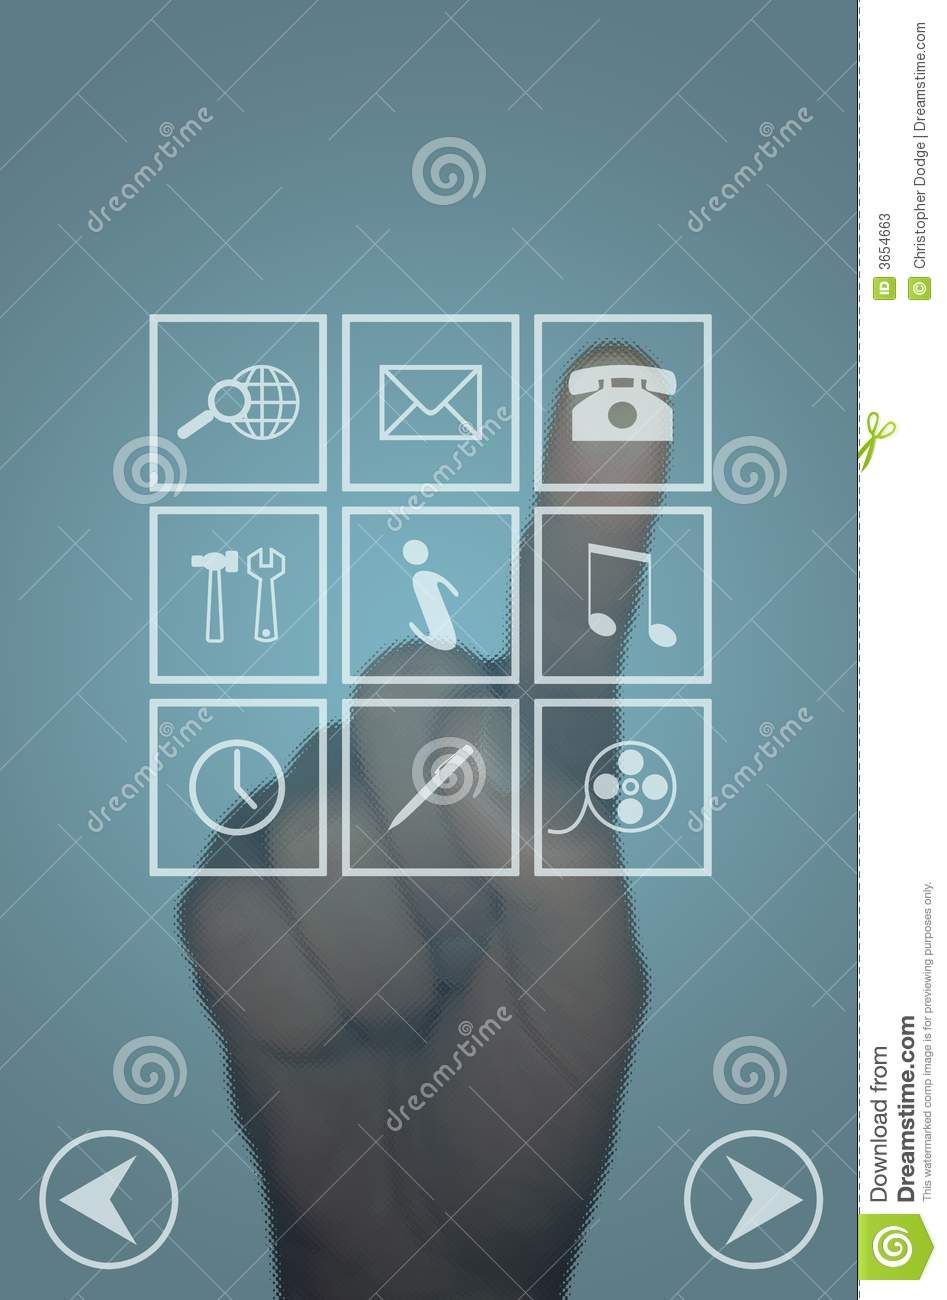 how to clean touch screen scratches